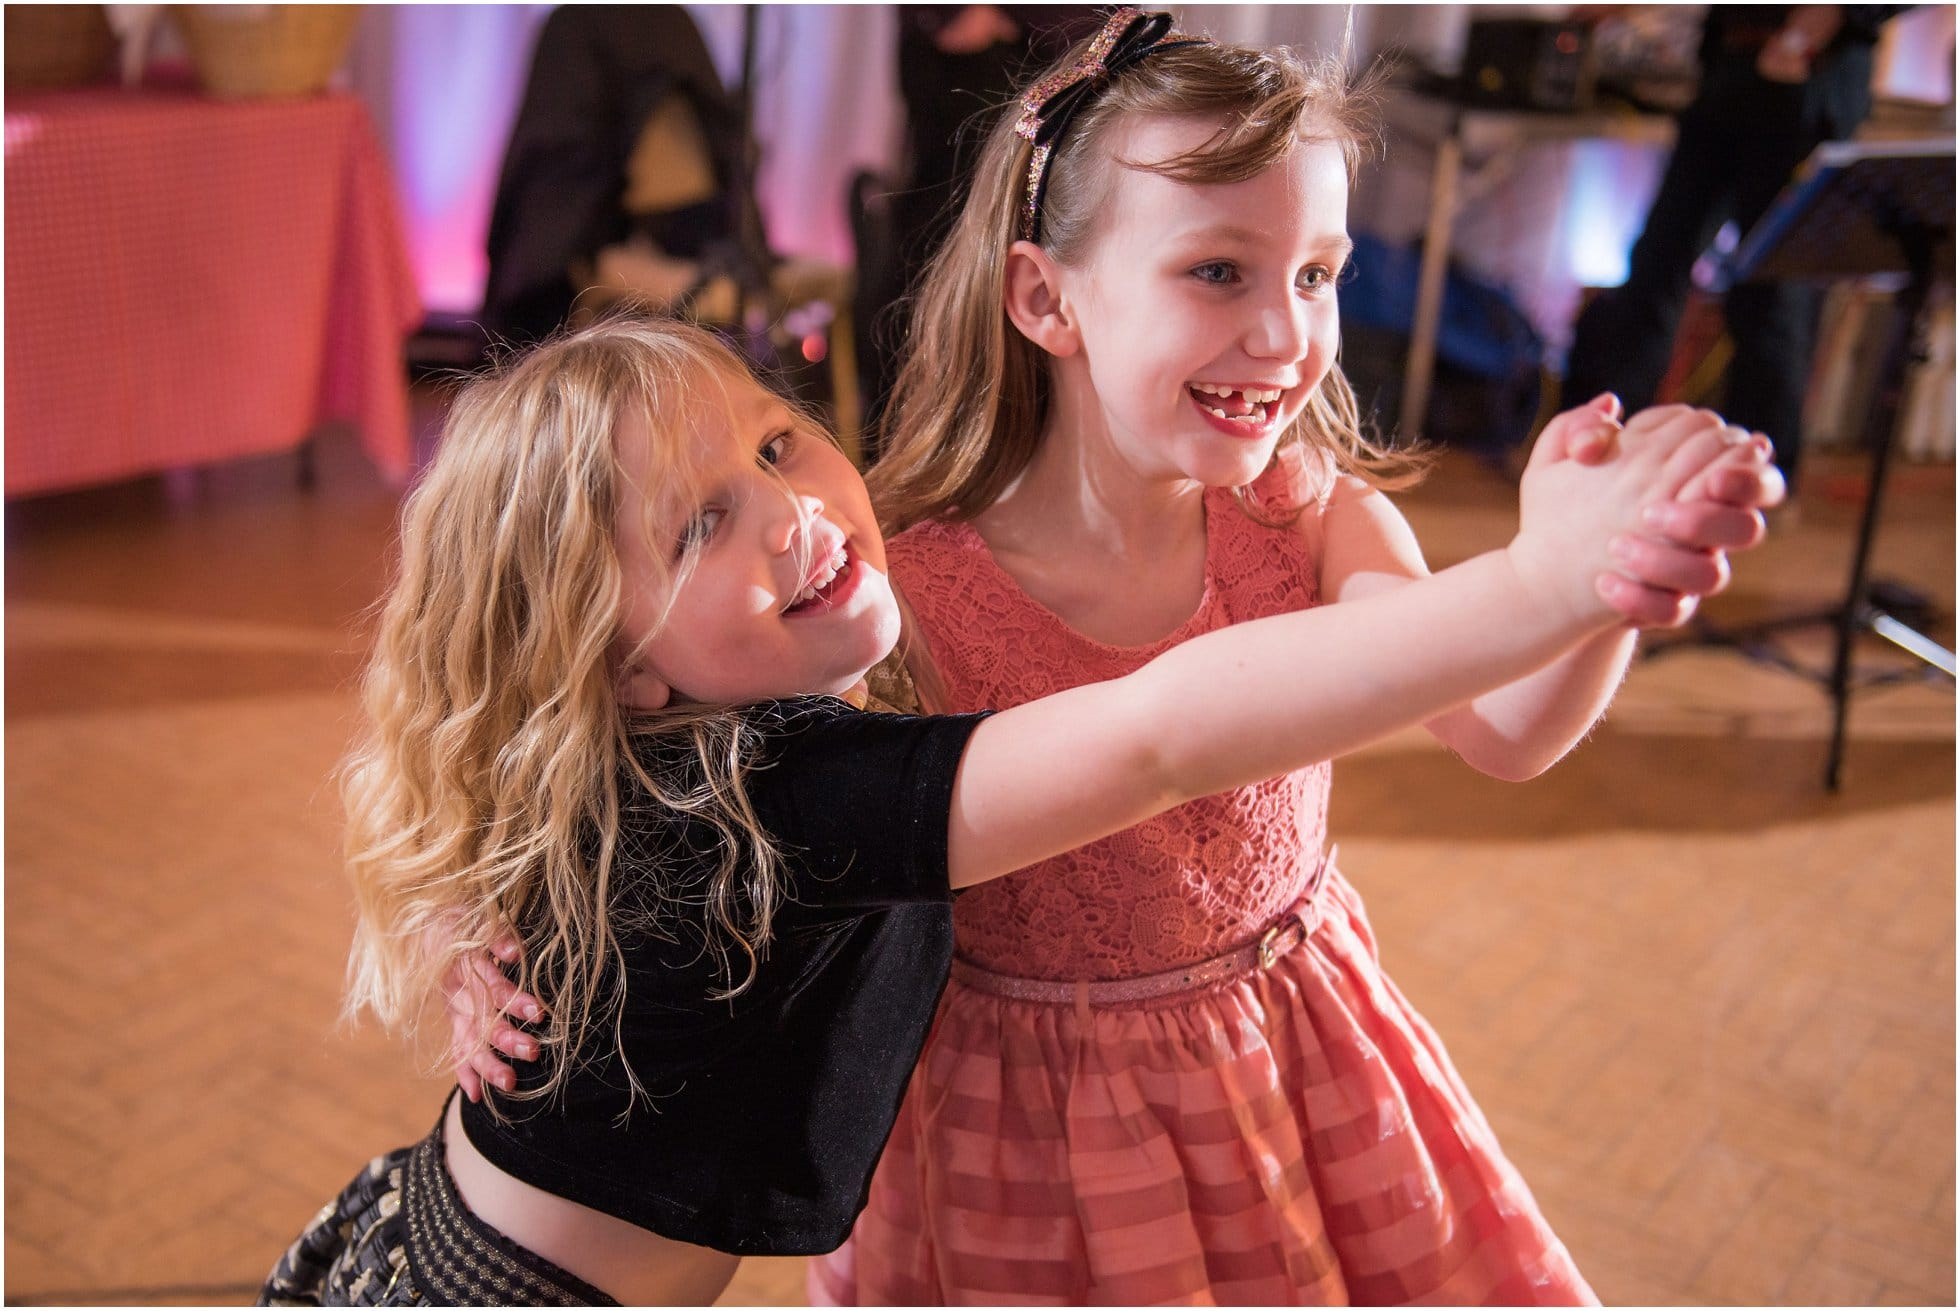 Girls copying the bride and groom dancing